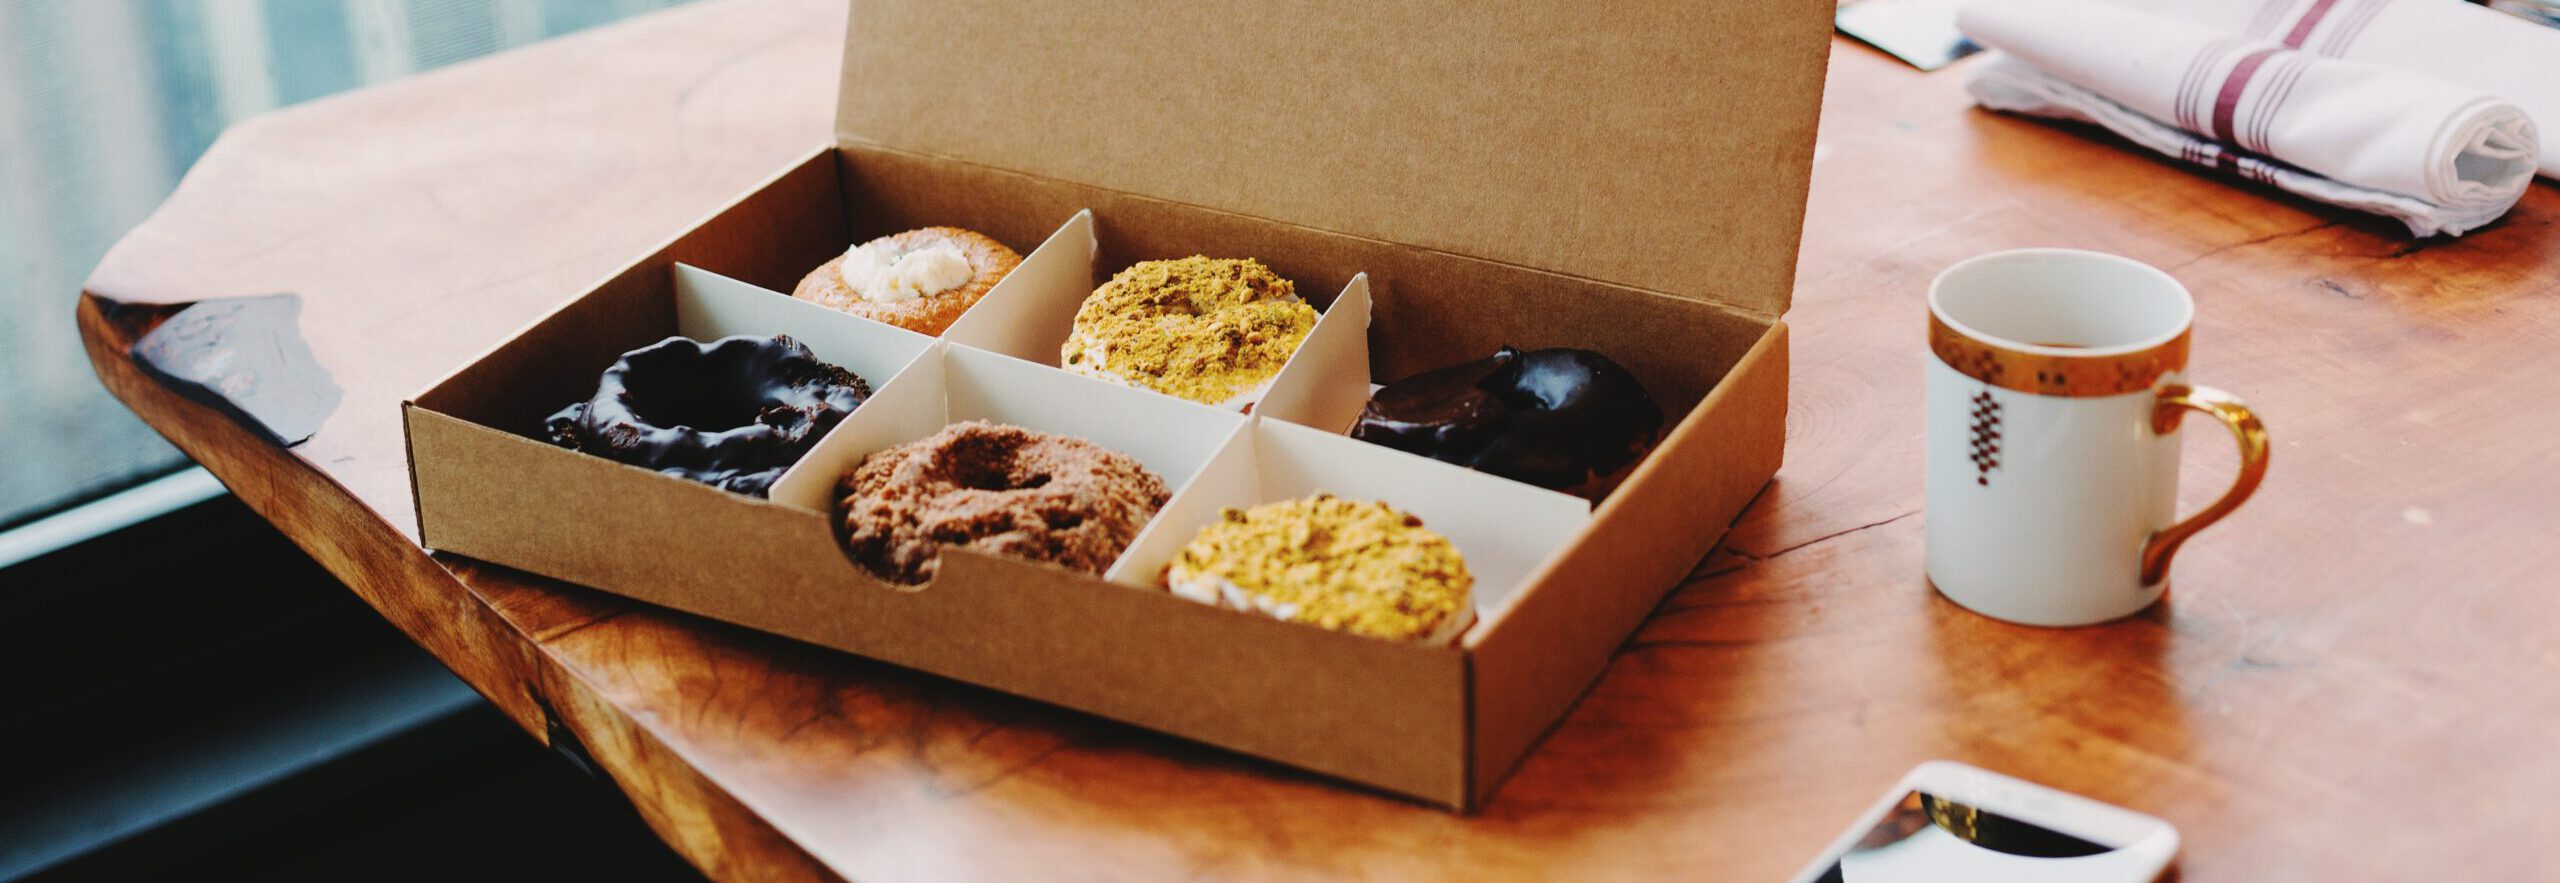 Donuts. For Everyone!